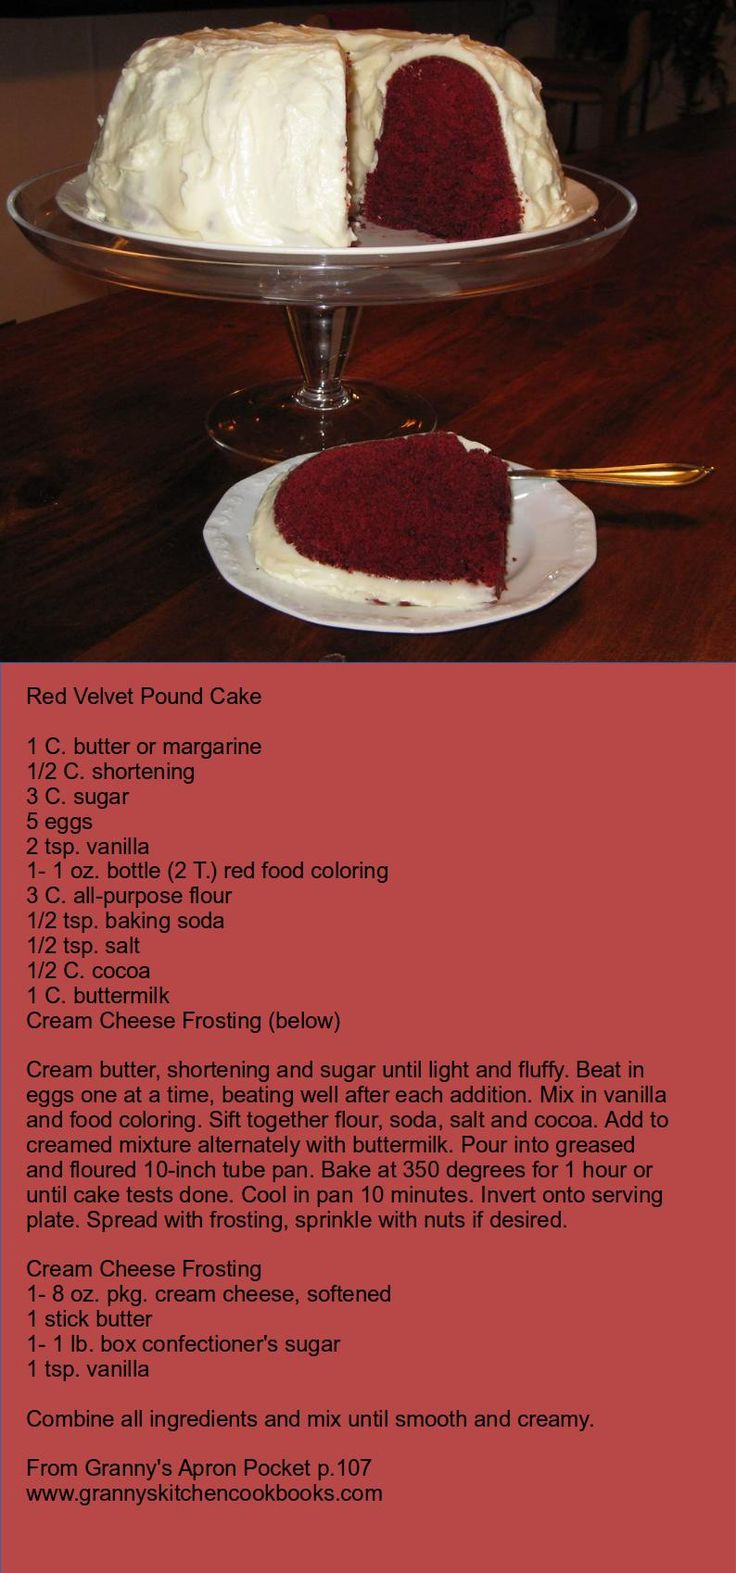 Red Velvet Pound Cake from Granny's Kitchen